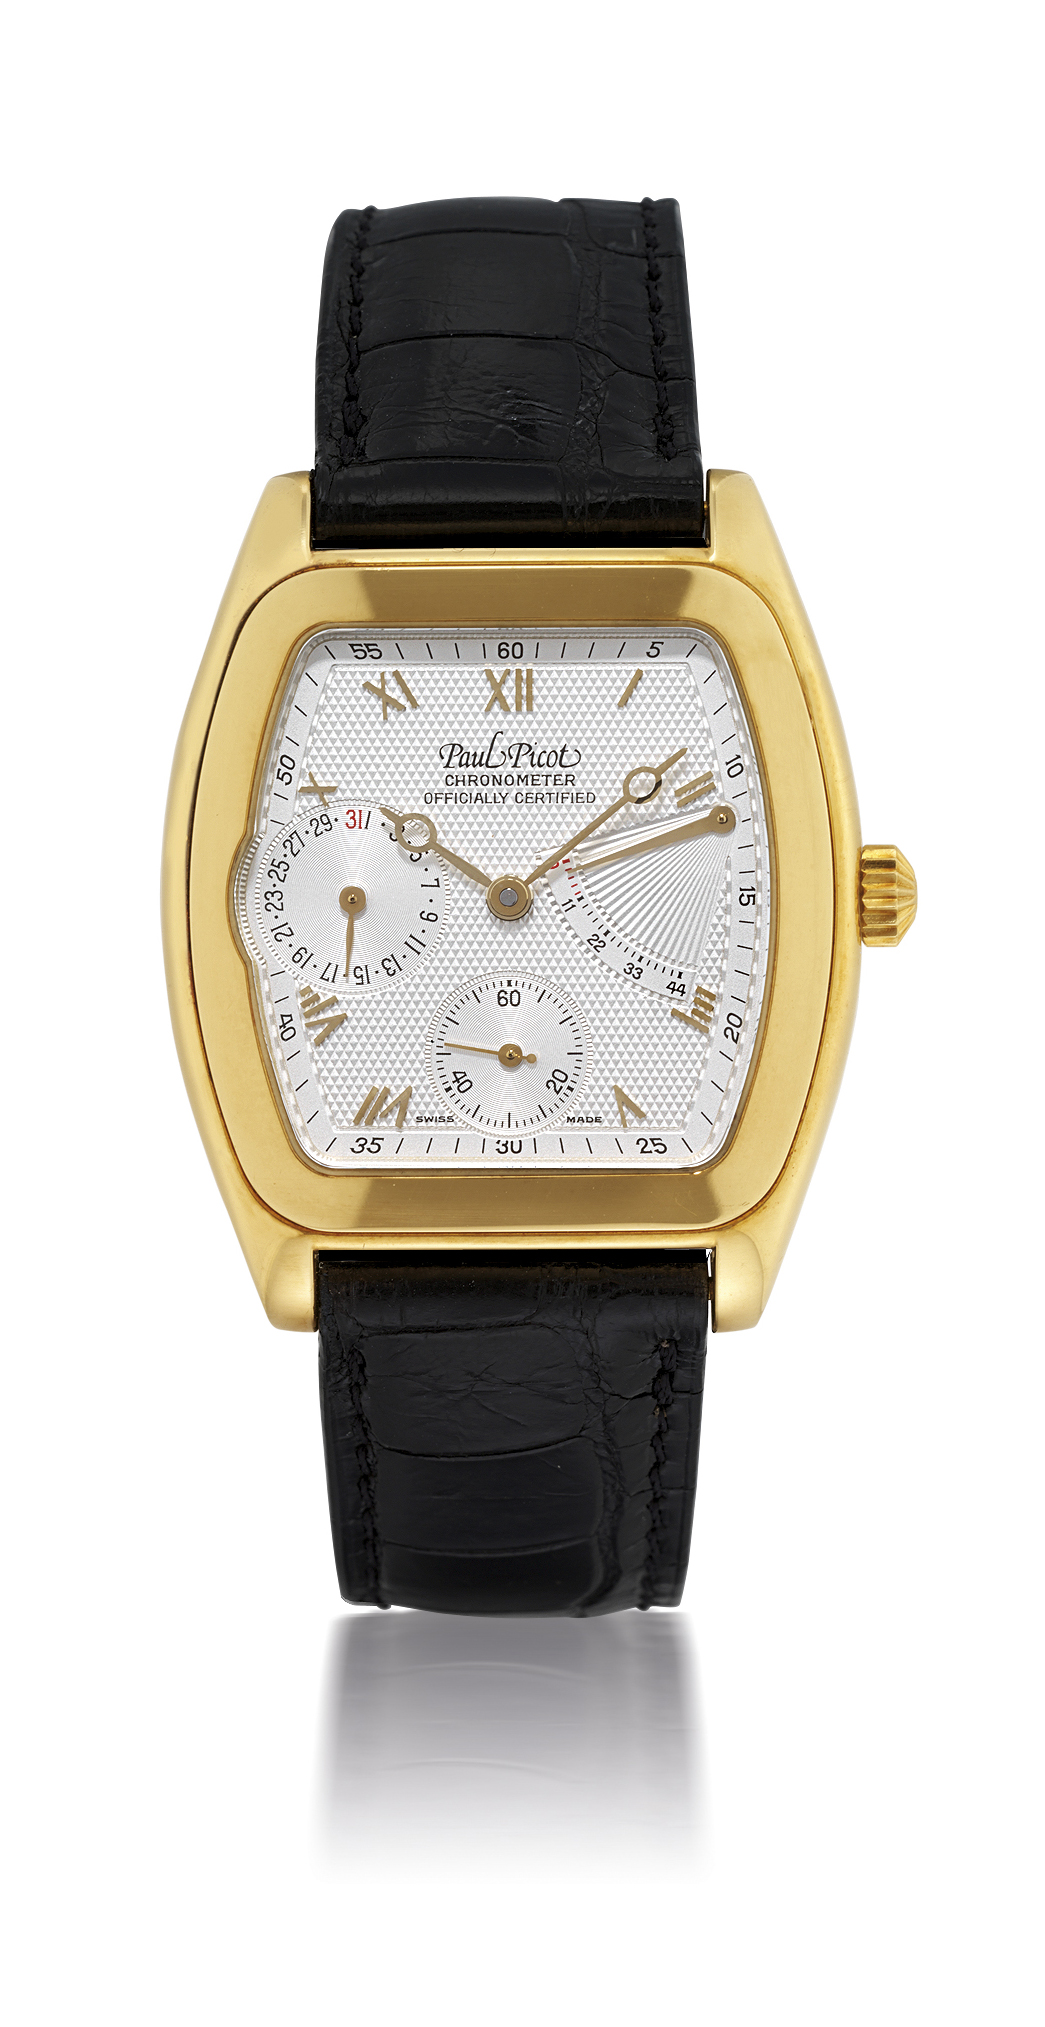 PAUL PICOT, FIRSHIRE  YELLOW GOLD AUTOMATIC WRISTWATCH WITH POWER RESERVE AND DATE DISPLAY